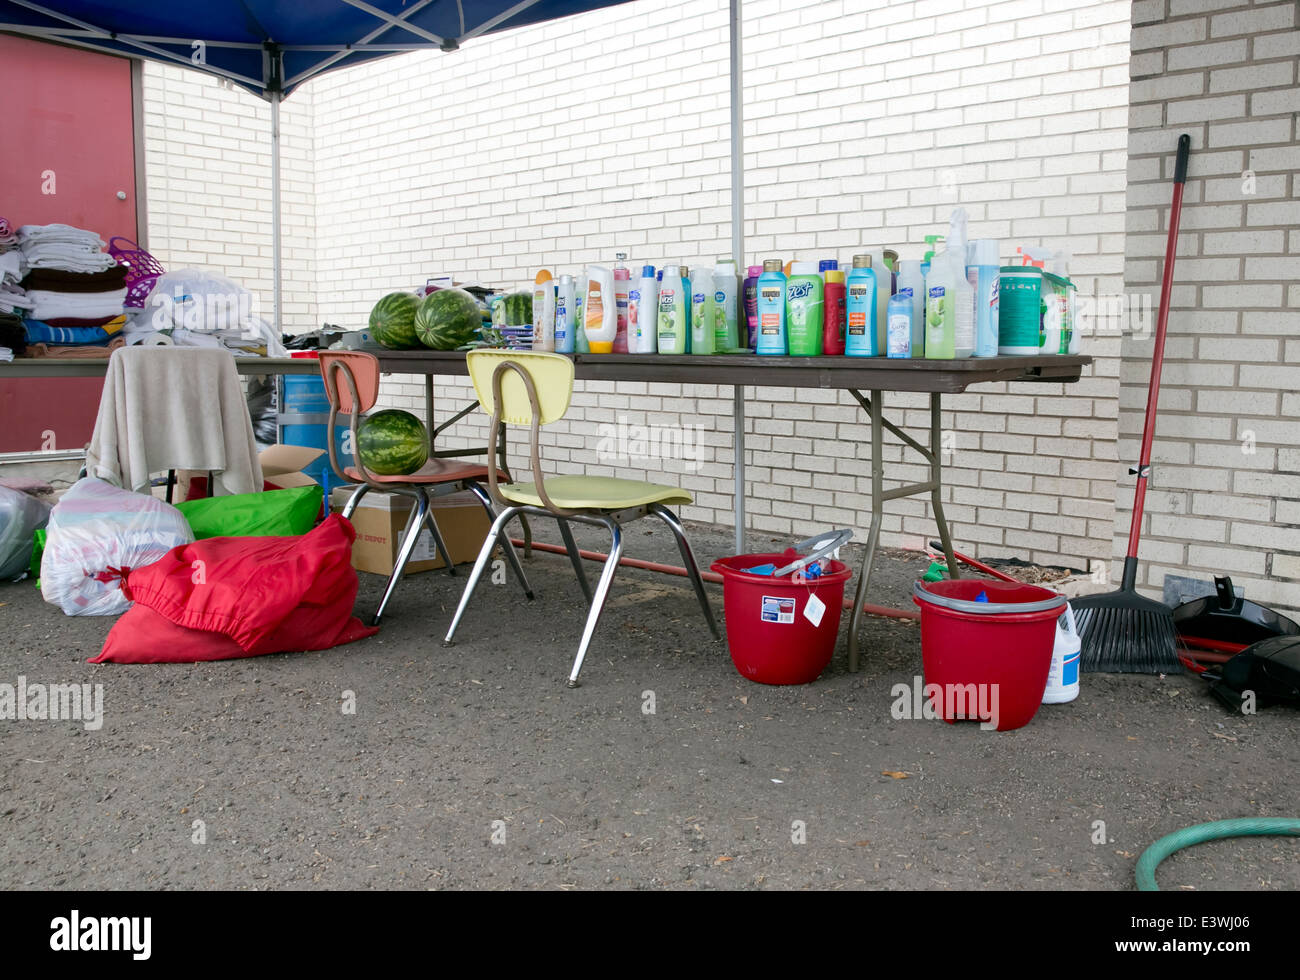 food, clothes donated to shelter in McAllen, Texas - Stock Image